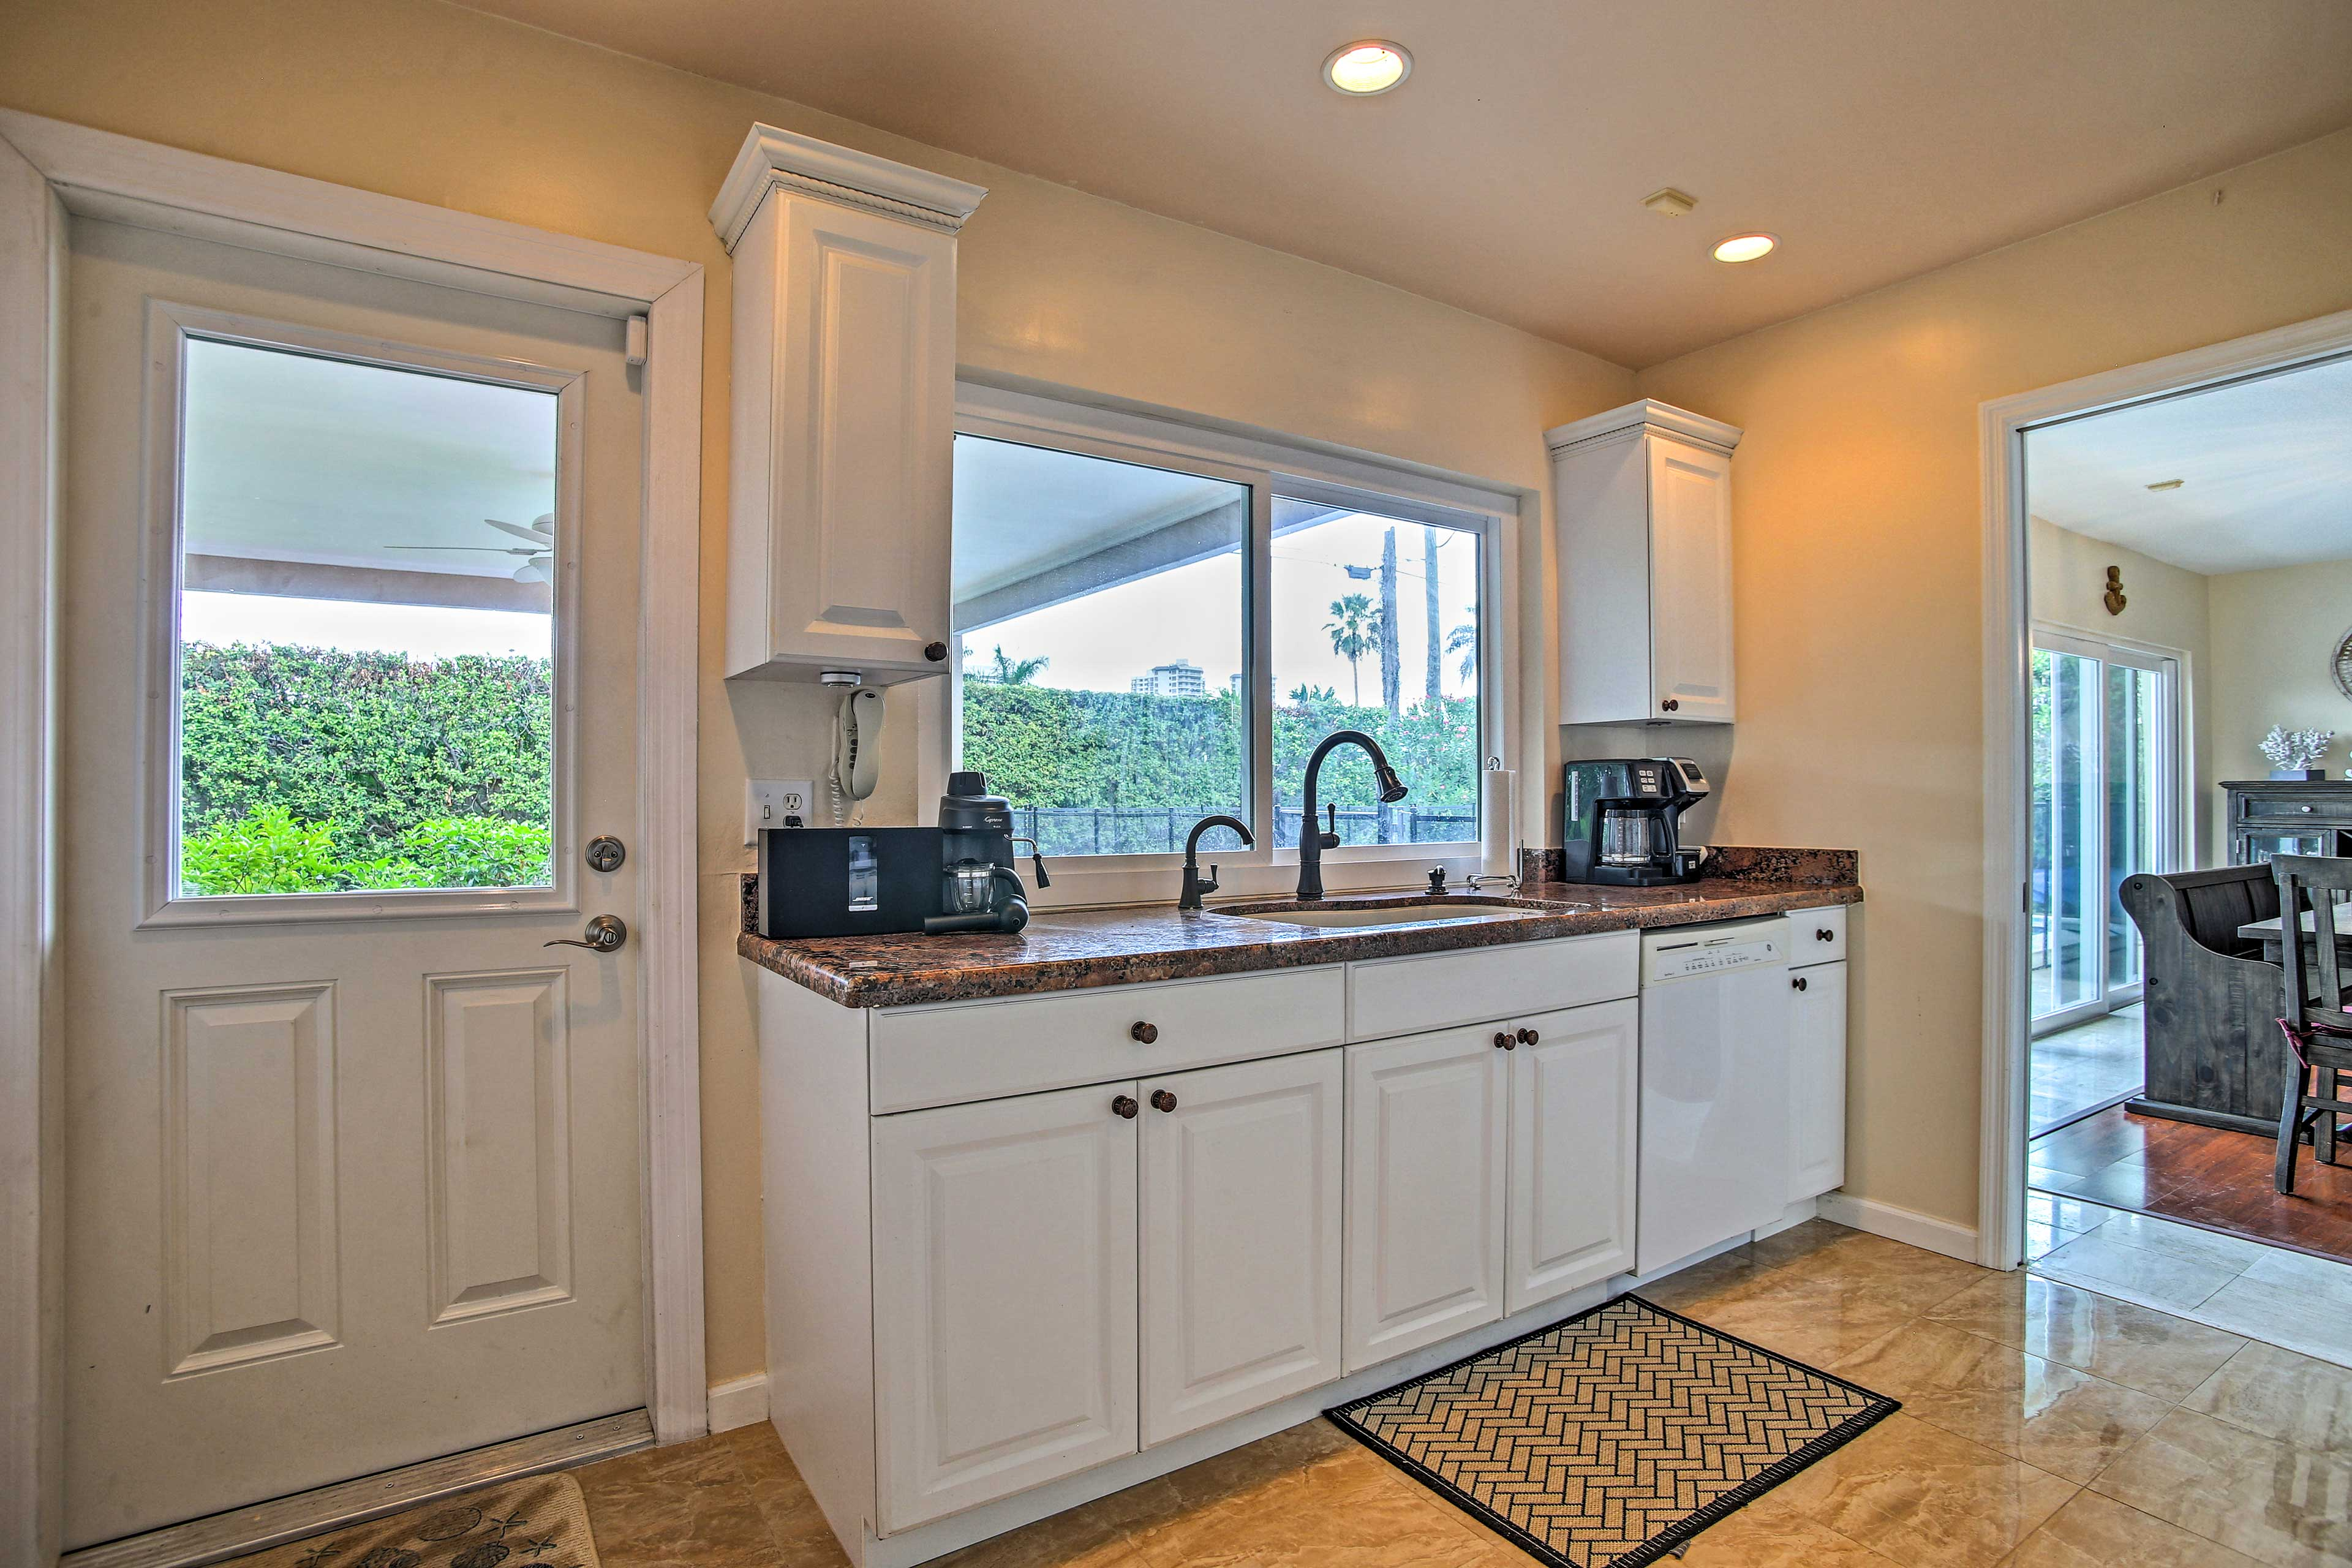 Access the patio from the kitchen.